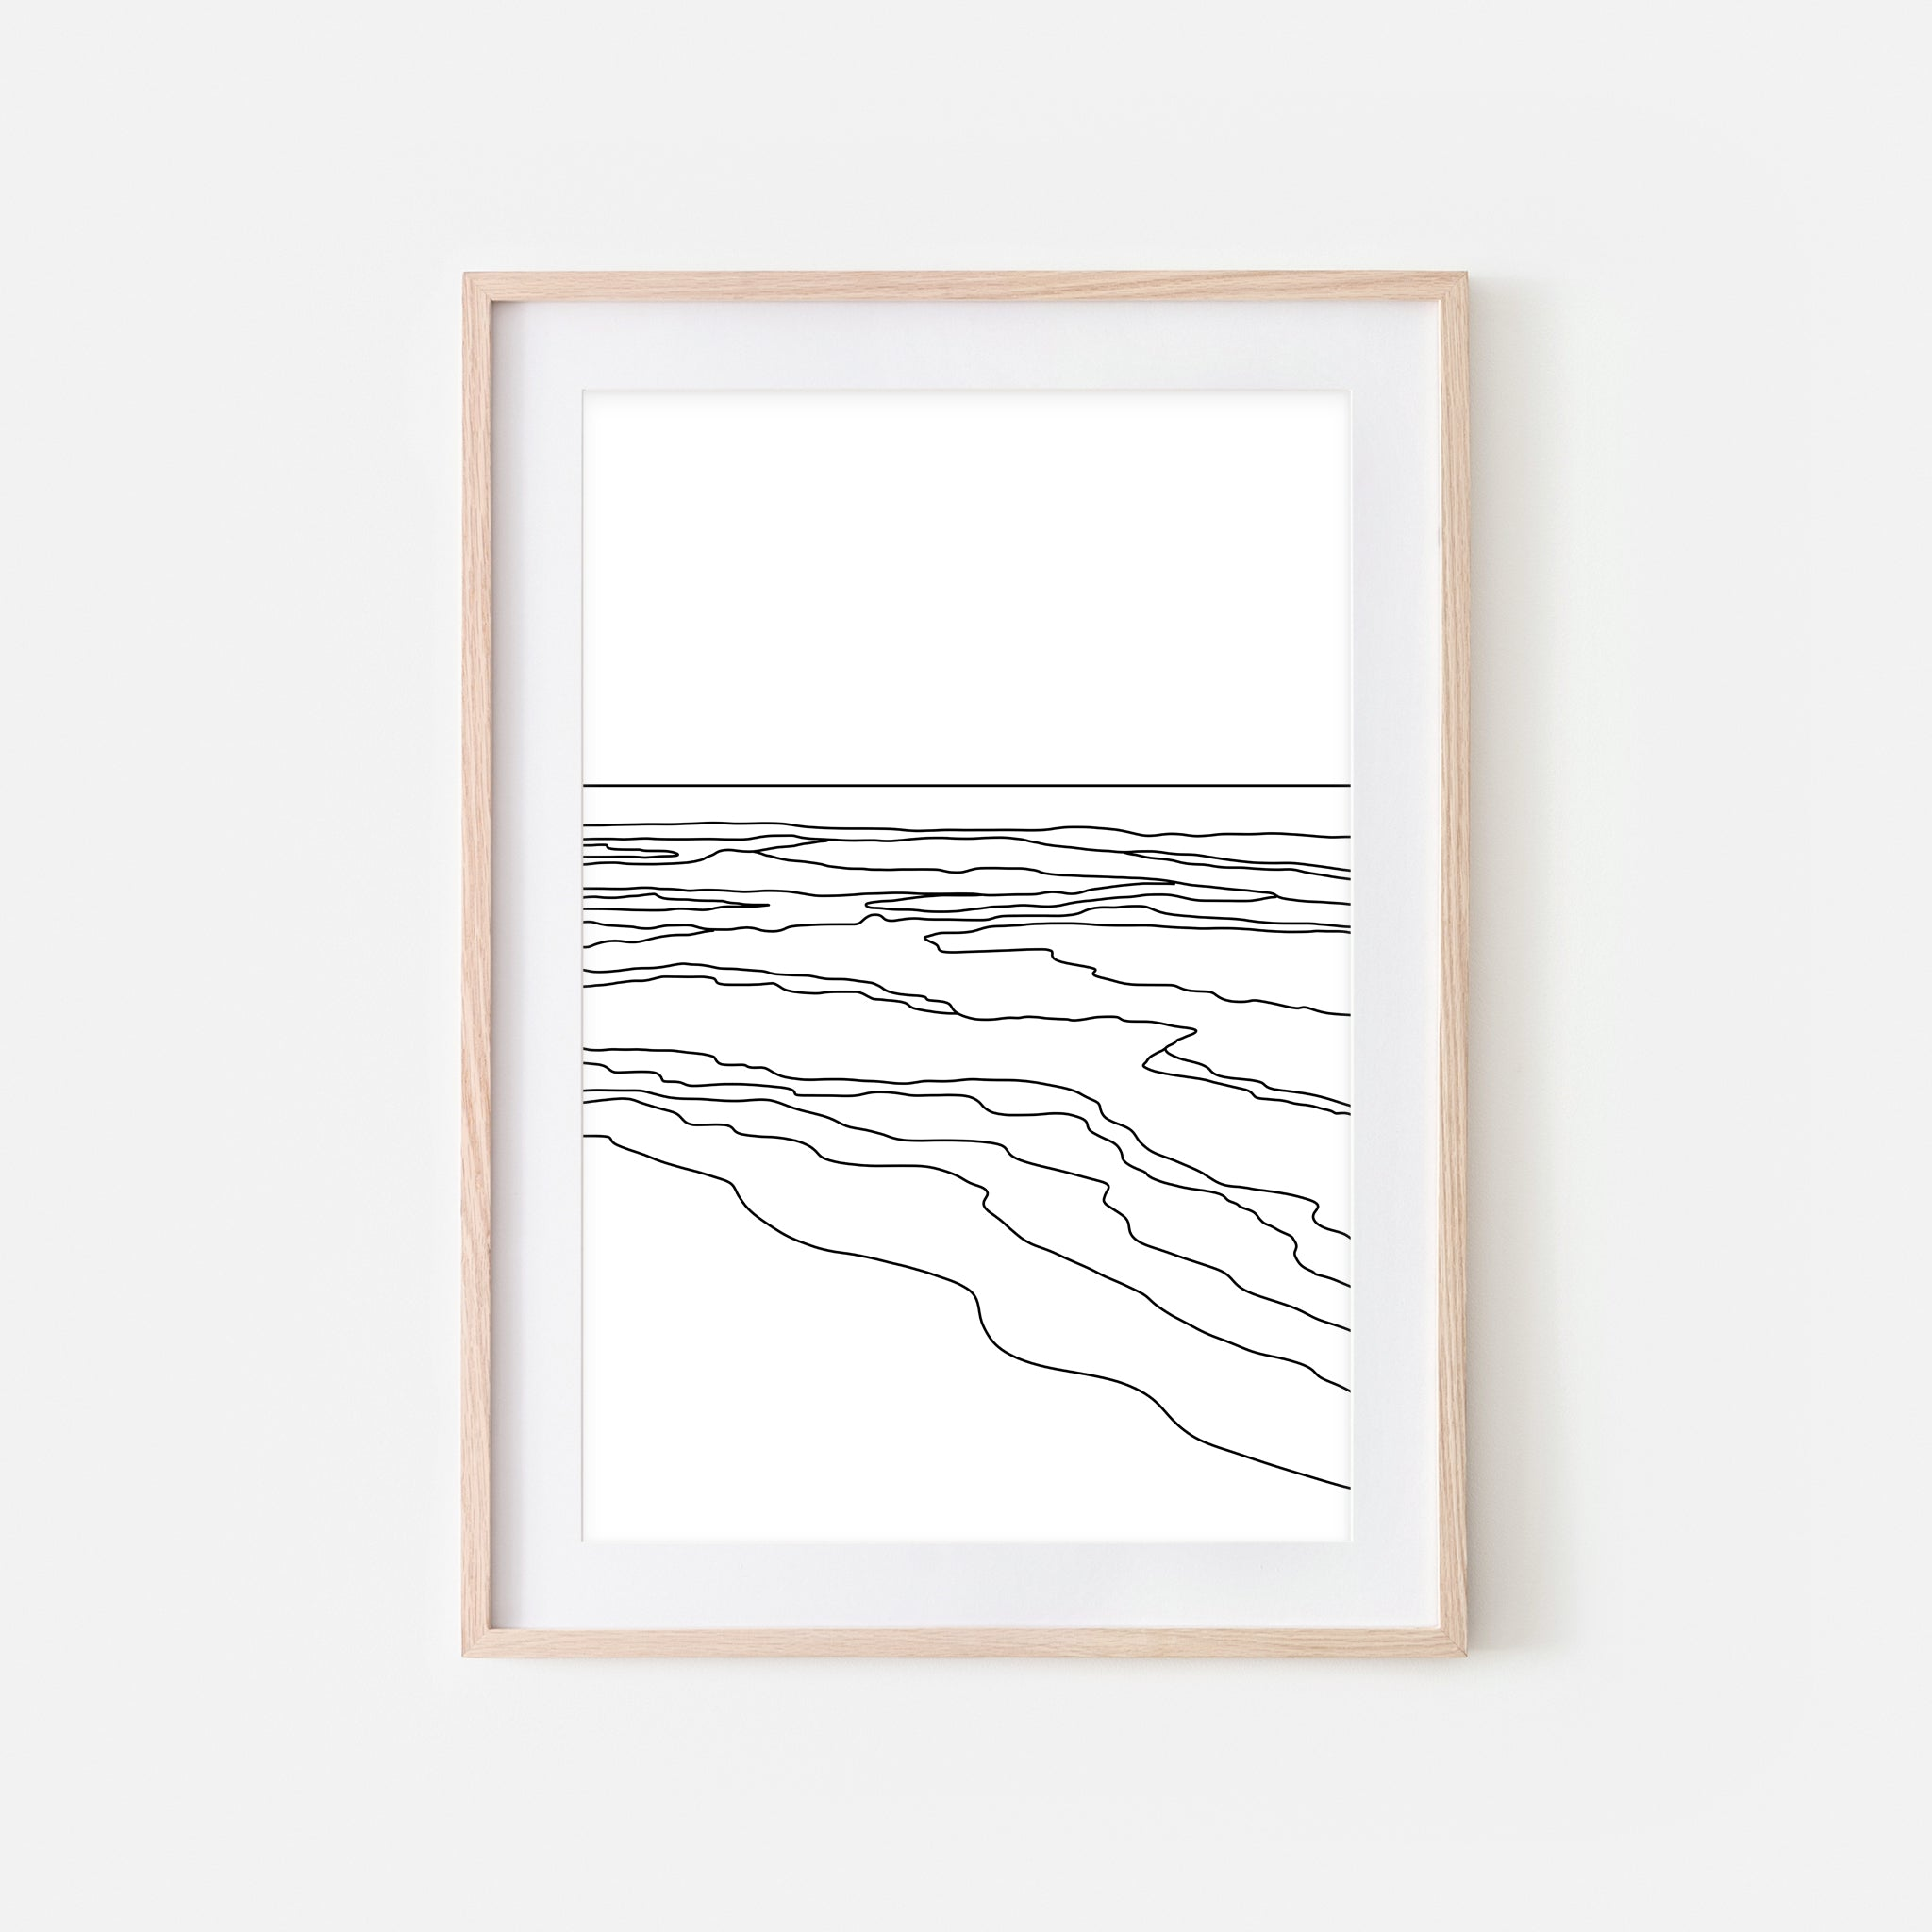 Beach No. 1 Wall Art - Minimalist Abstract Coastal Landscape Line Drawing - Black and White Print, Poster or Printable Download